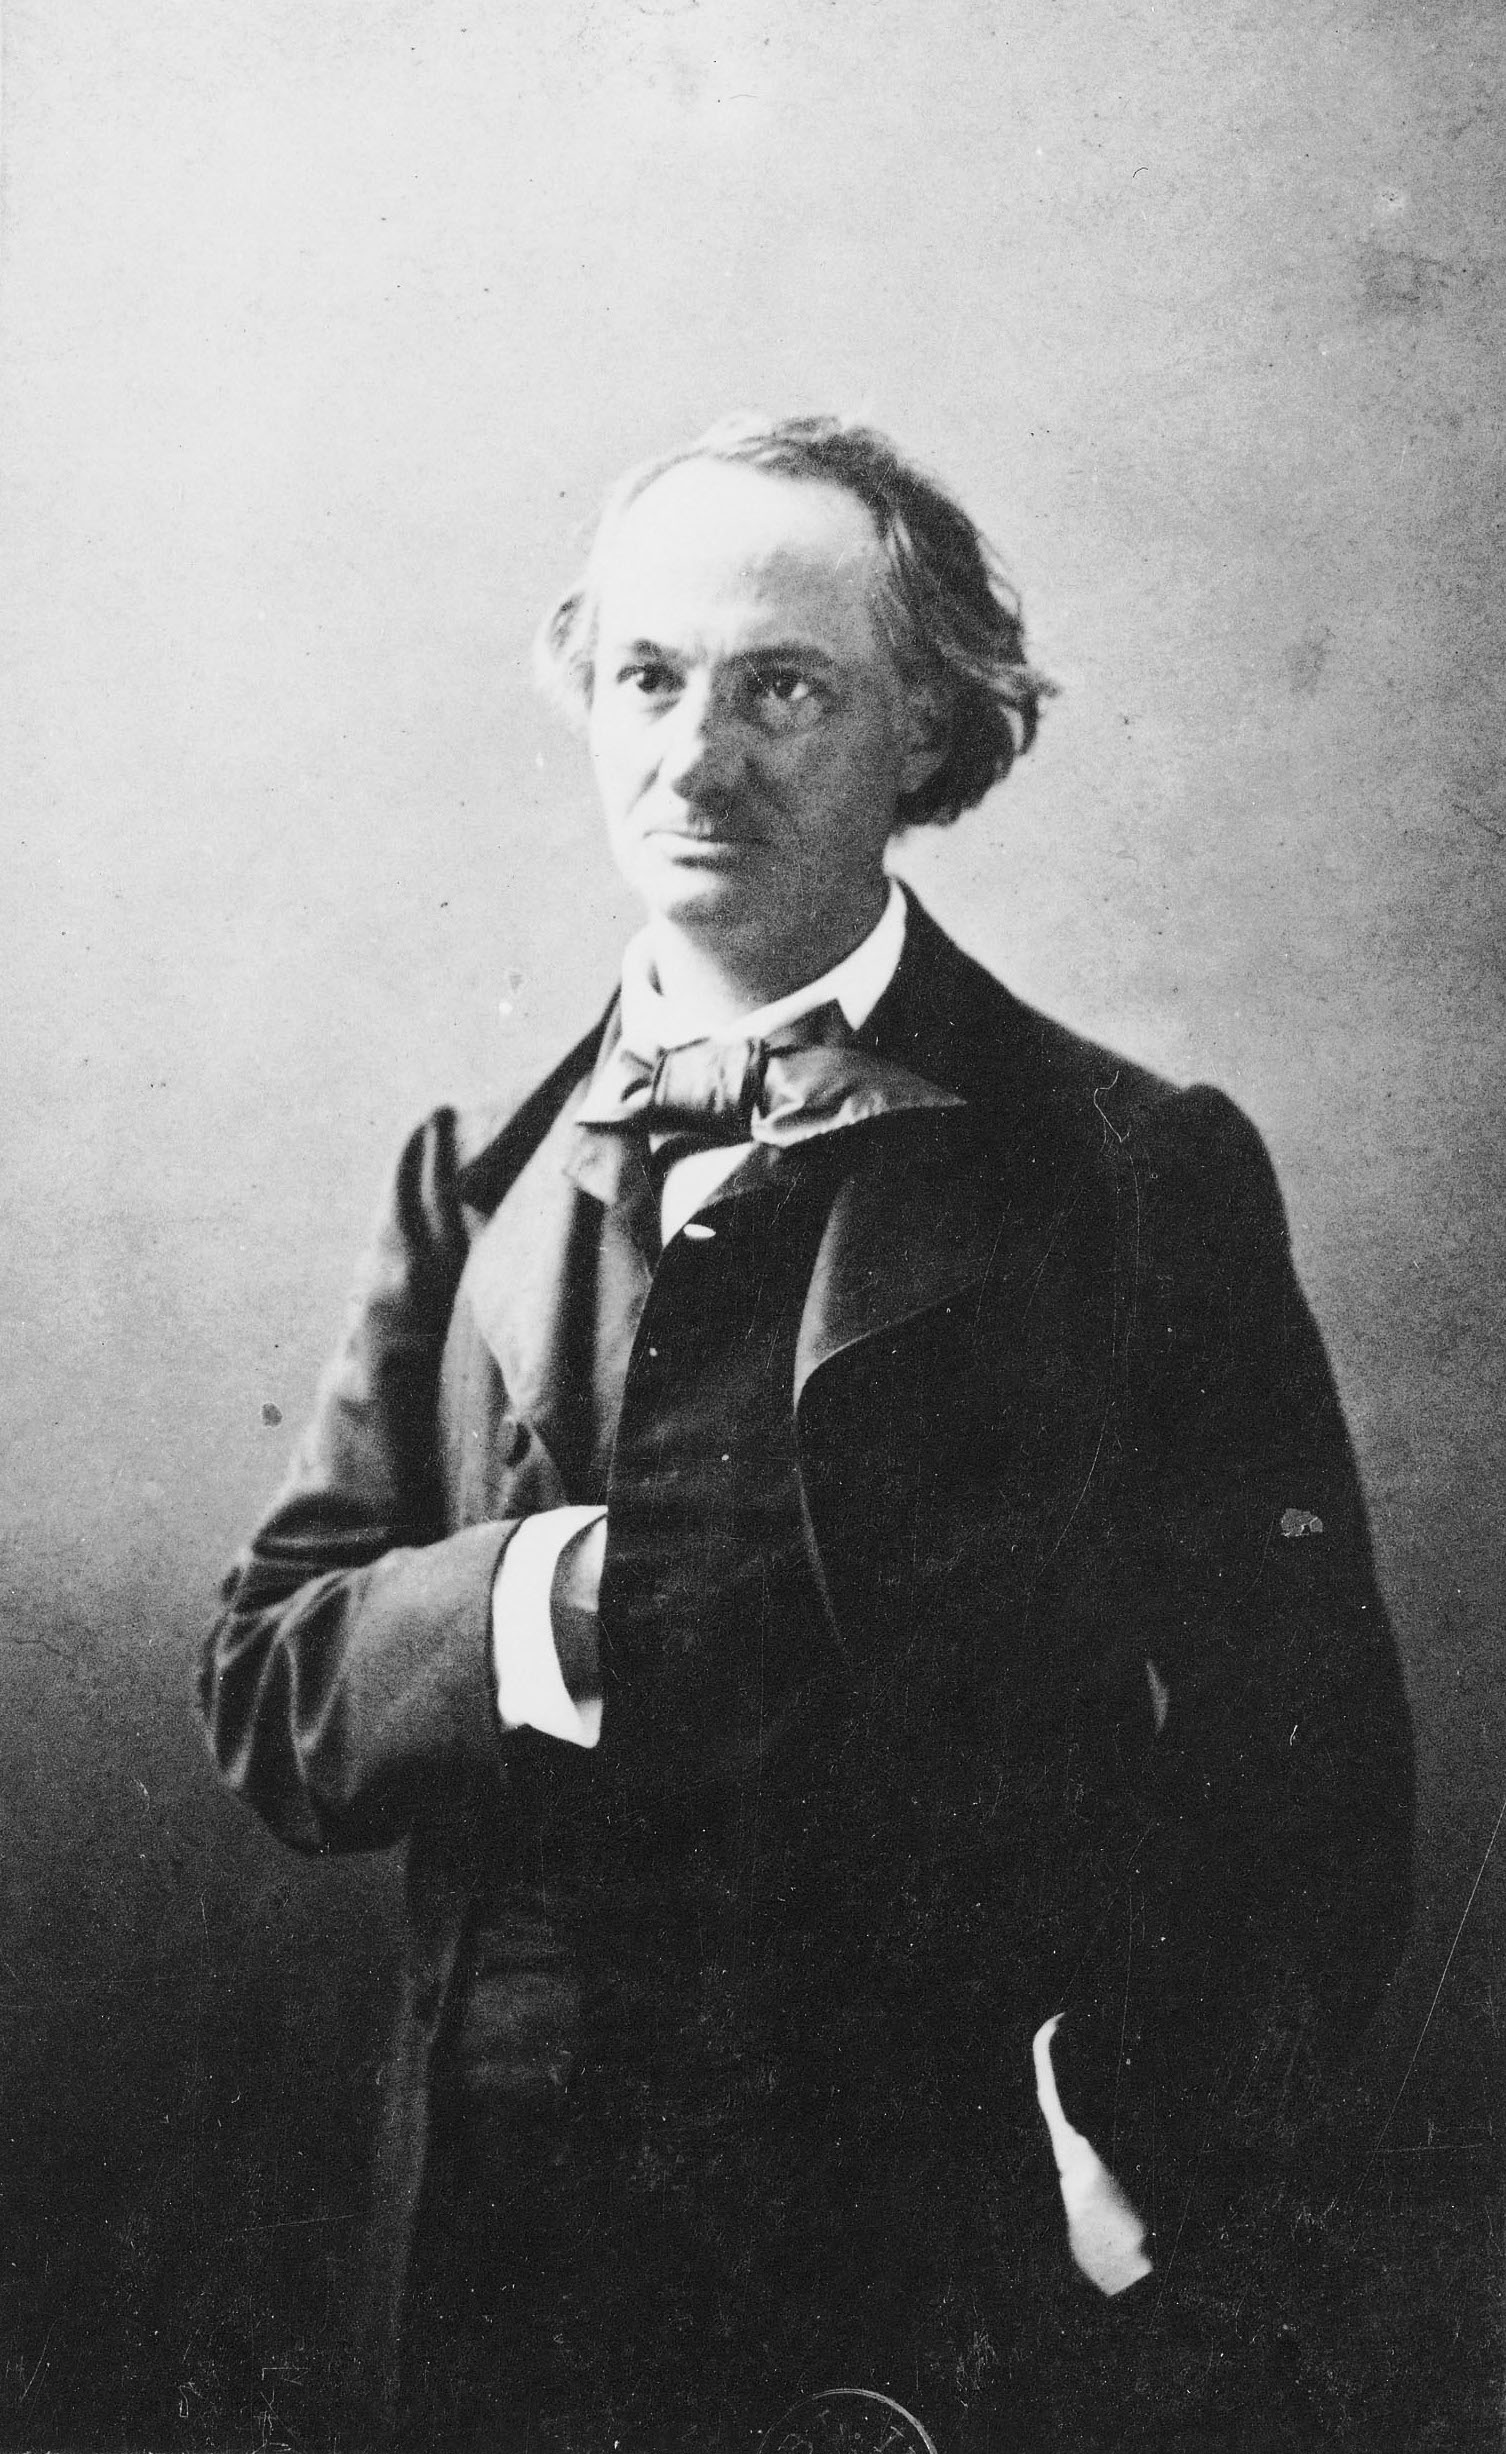 Fig. 16. Félix Nadar, Baudelaire, between 1854 and 1860, albumen print on paper pasted on card, 8.5 x 9cm. Bibliothèque nationale de France, Paris